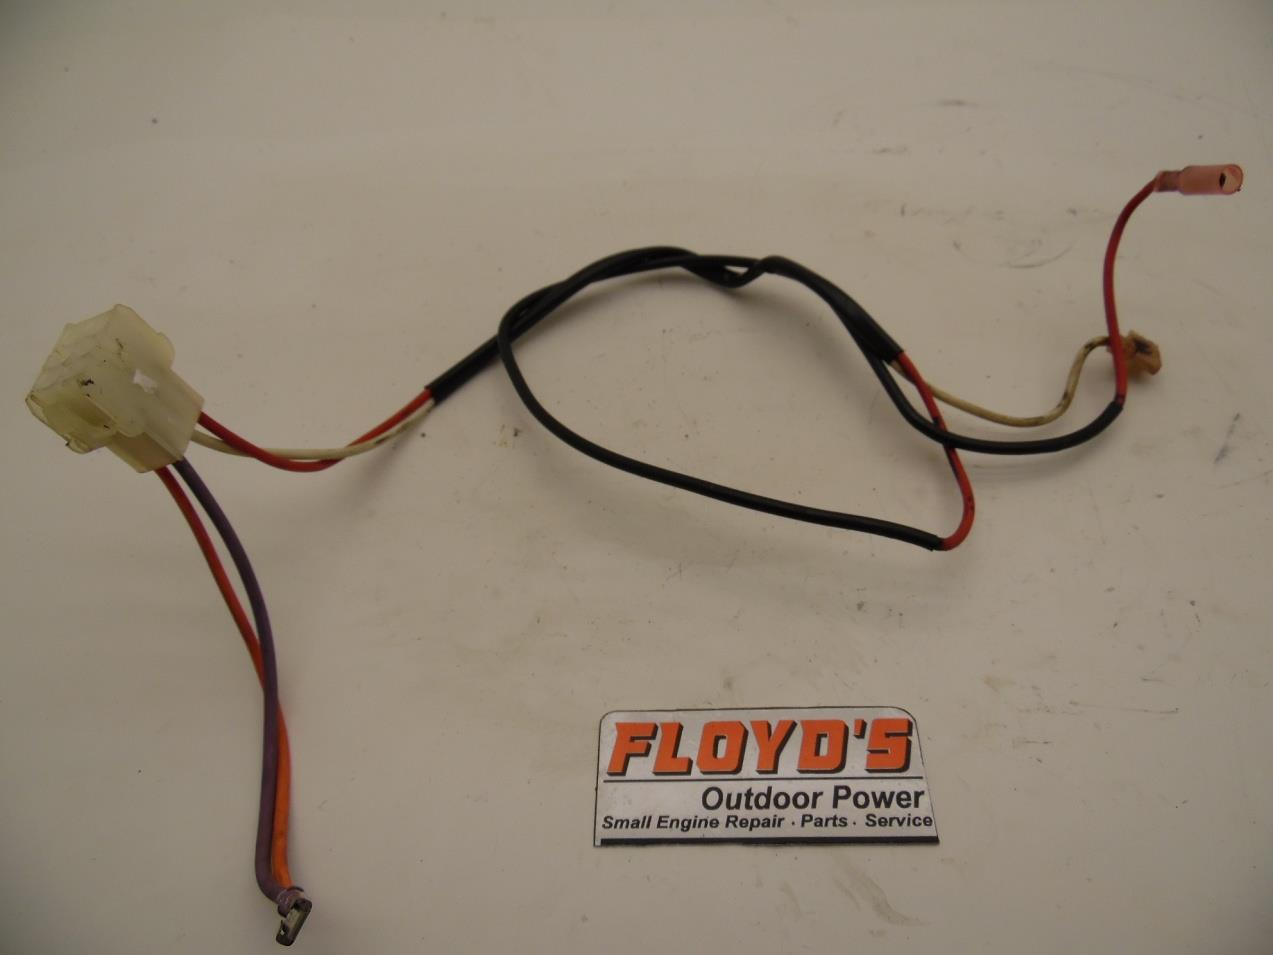 hight resolution of details about kohler courage sv600 20hp engine wiring harness 20 176 12 s 20 176 07 s